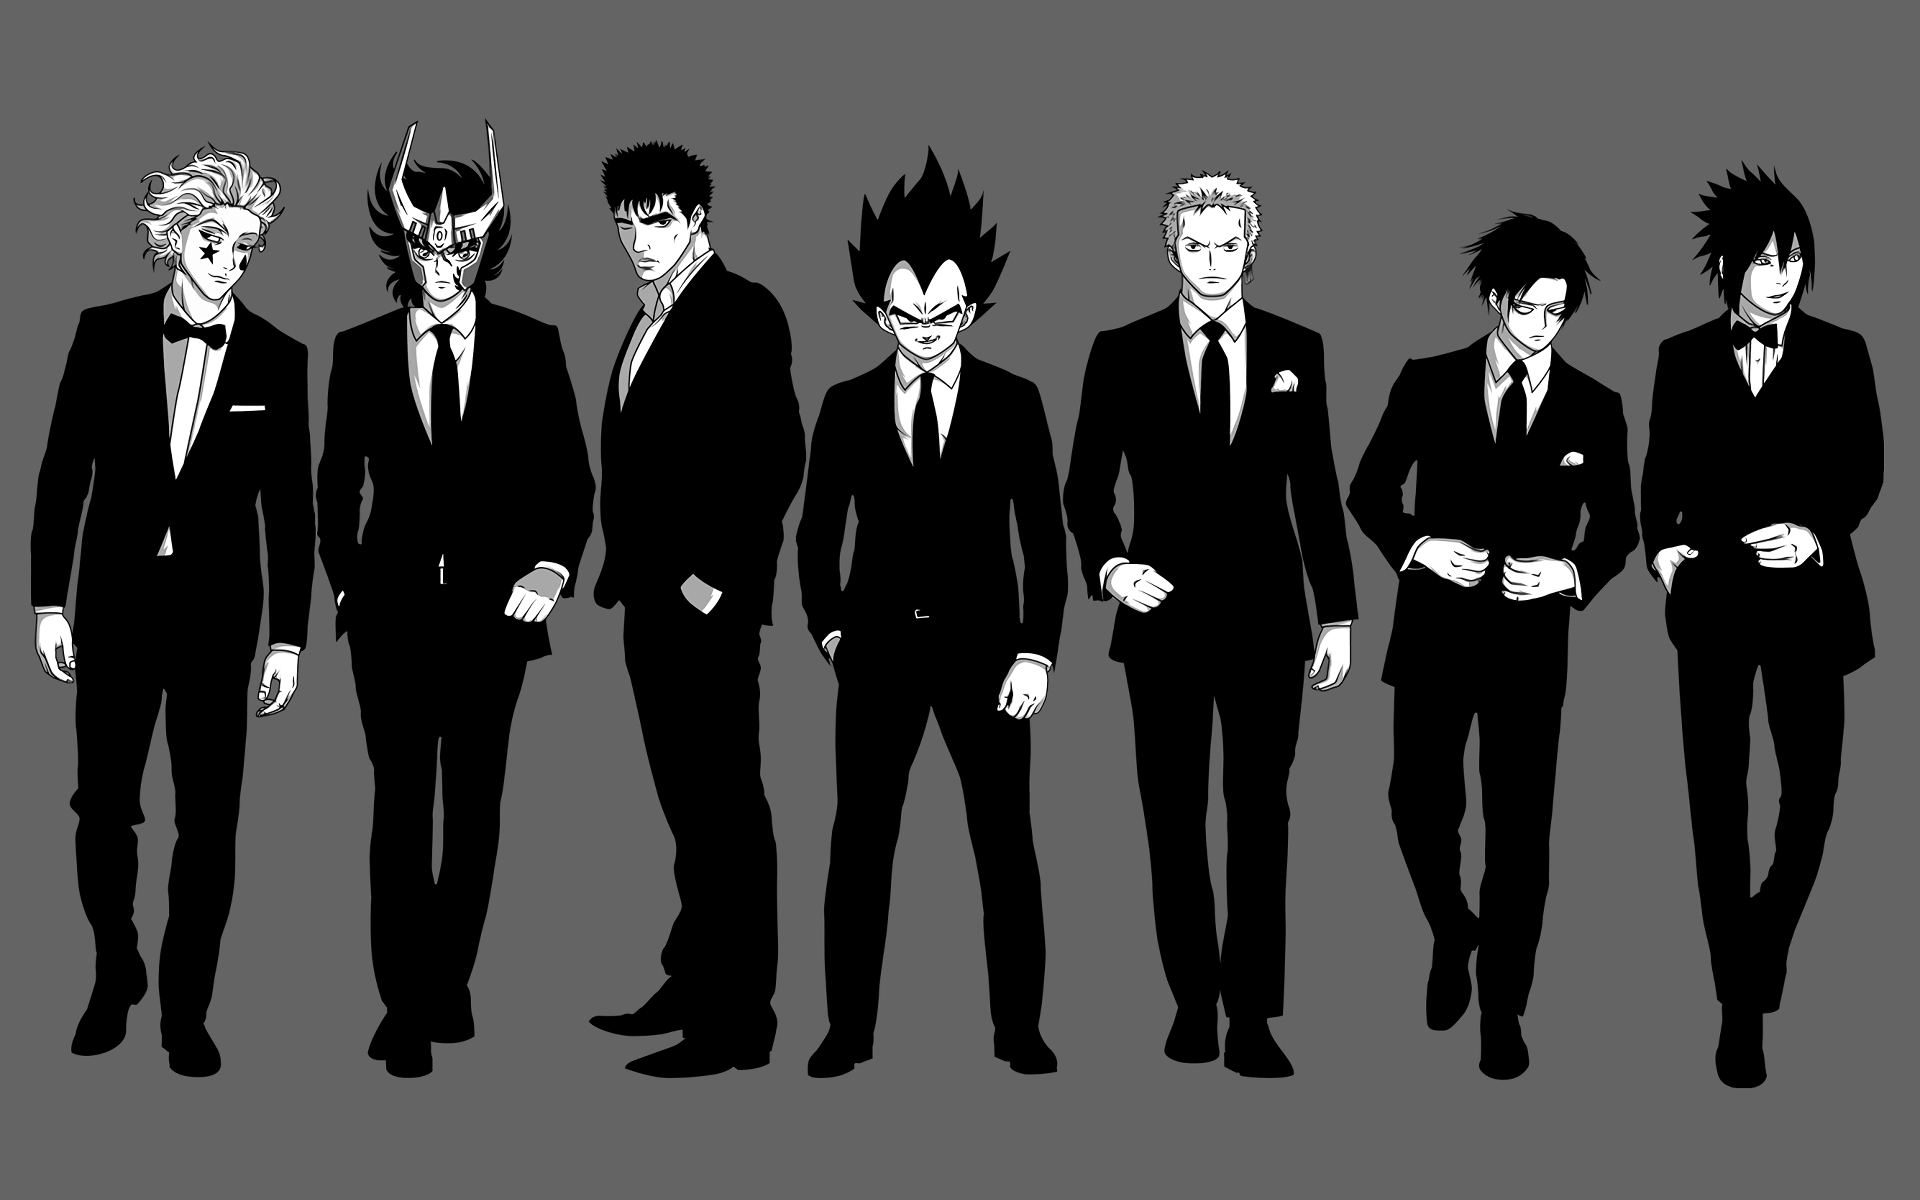 Anime - Crossover  Sasuke Uchiha Levi Ackerman Zoro Roronoa Vegeta (Dragon Ball) Hisoka (Hunter × Hunter) Naruto Attack on Titan Shingeki No Kyojin Dragon Ball One Piece Berserk Guts (Berserk) Saint Seiya Hunter × Hunter Wallpaper